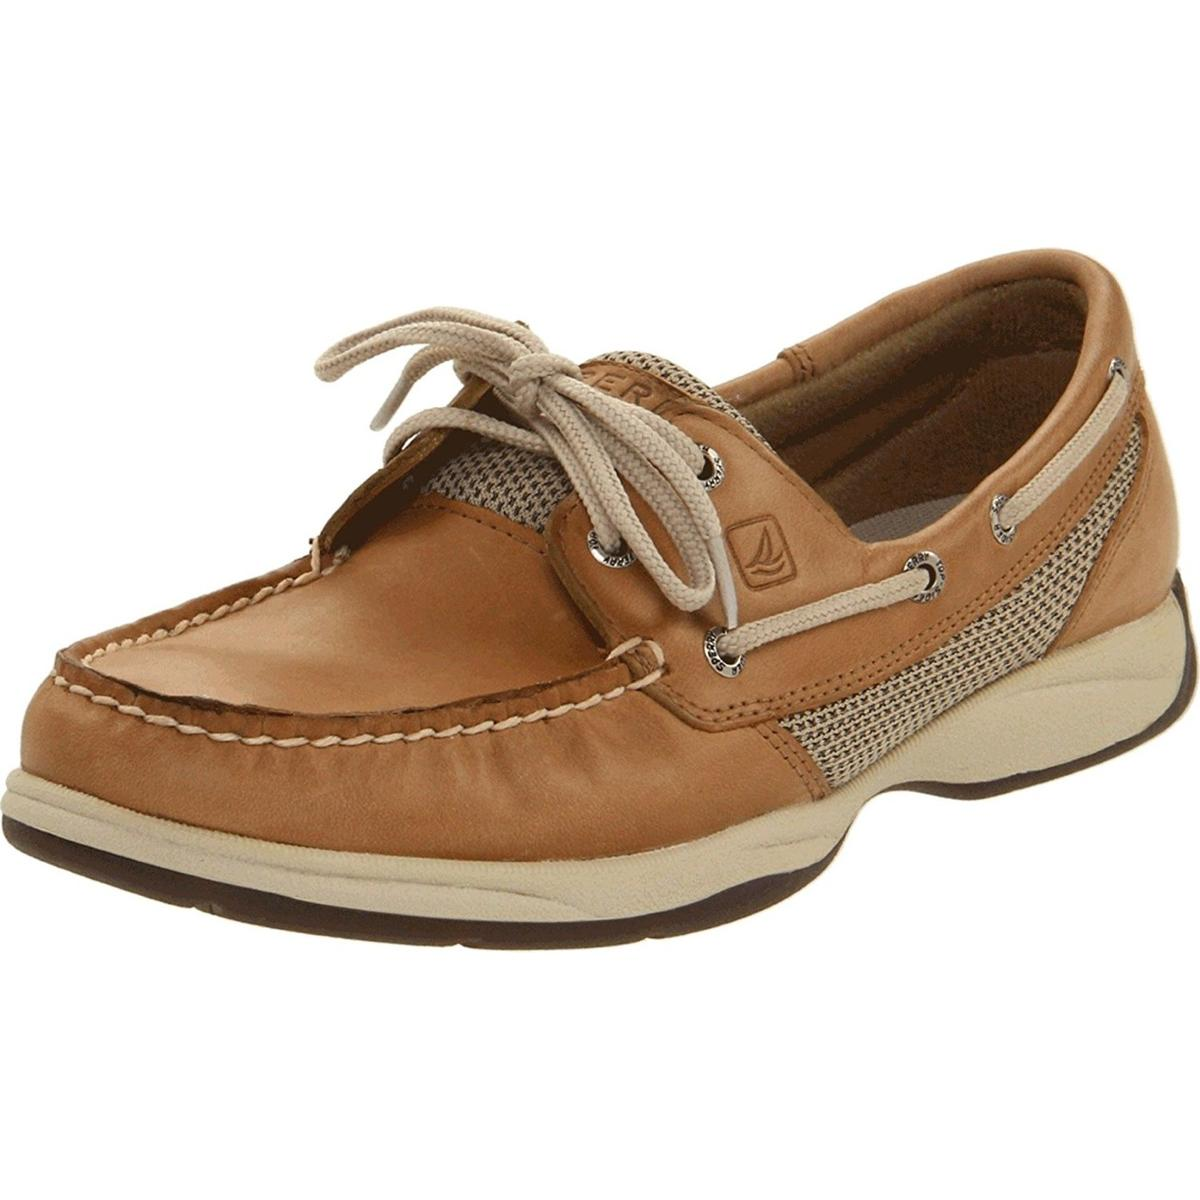 Sperry Top-Sider Intrepid 2 Eye Womens Linen/mesh Boat Shoes